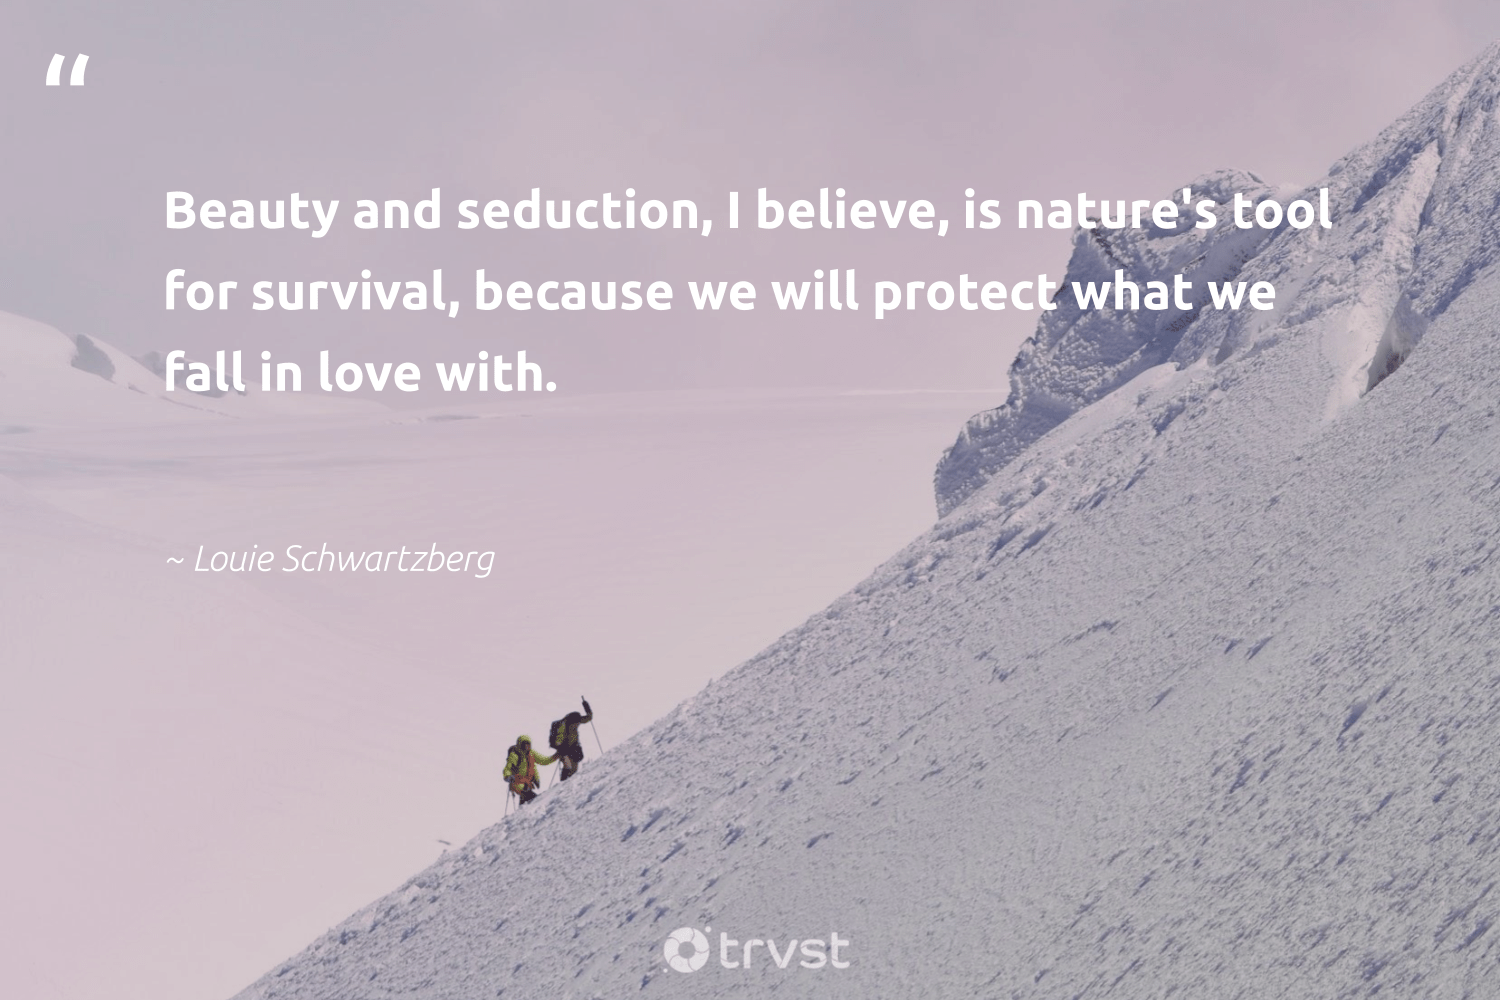 """""""Beauty and seduction, I believe, is nature's tool for survival, because we will protect what we fall in love with.""""  - Louie Schwartzberg #trvst #quotes #love #beauty #earth #takeaction #volunteer #dotherightthing #ecofriendly #changetheworld #environmentallyfriendly #ecoconscious"""